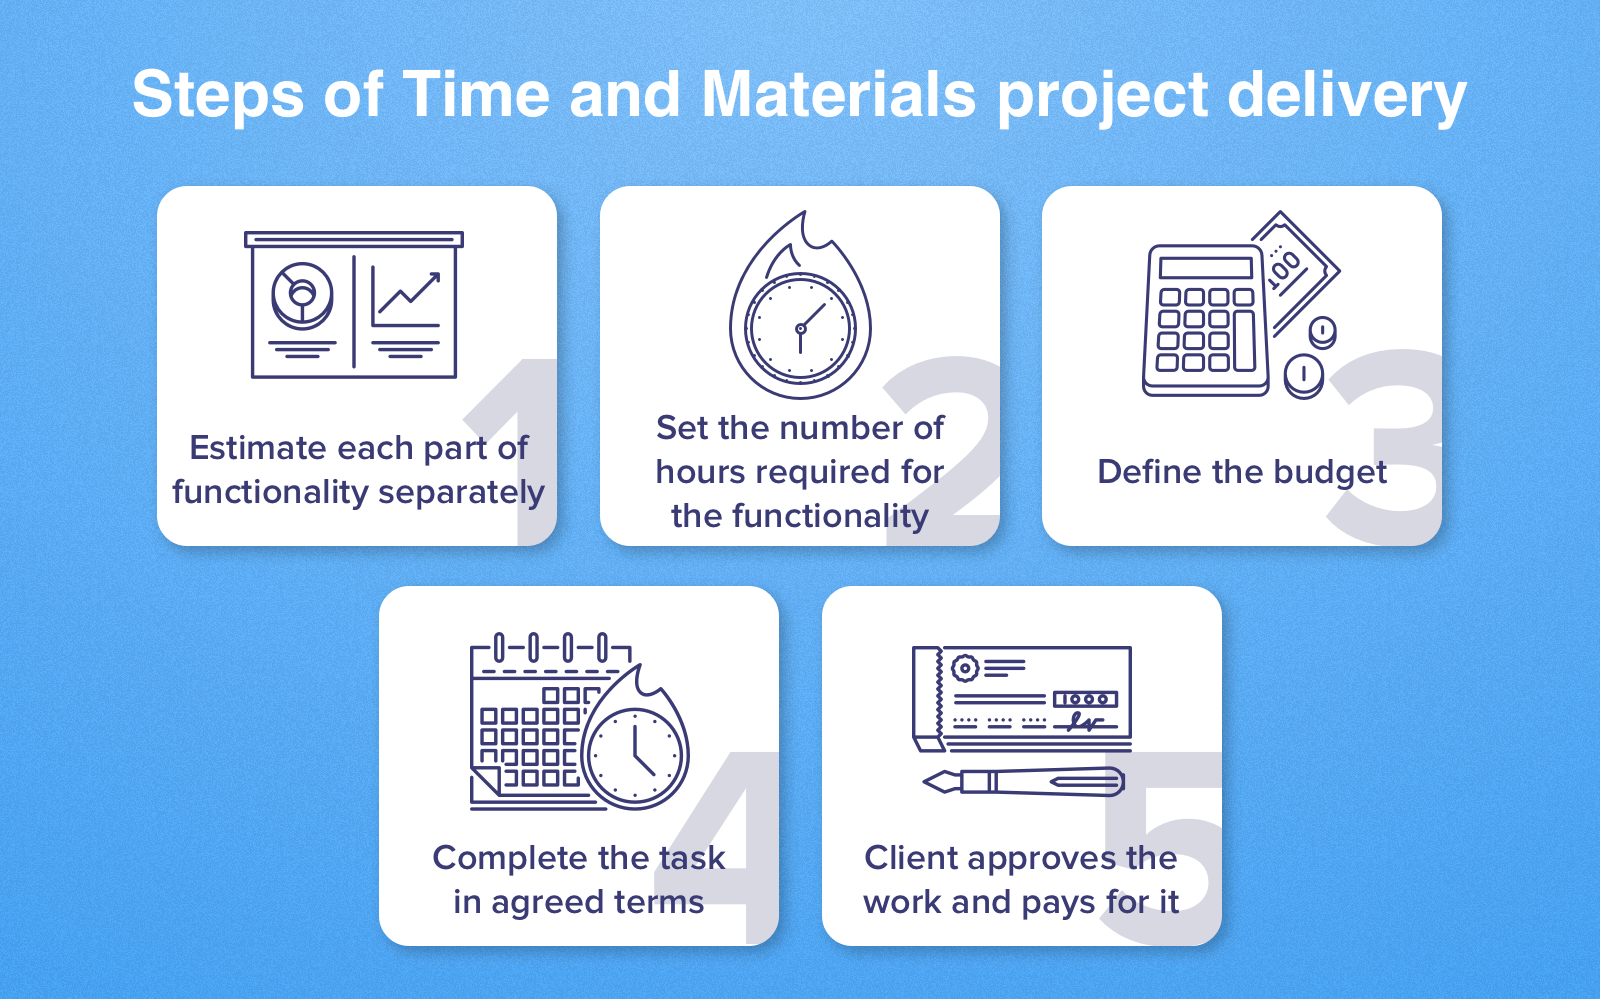 Time and Materials contract: Steps